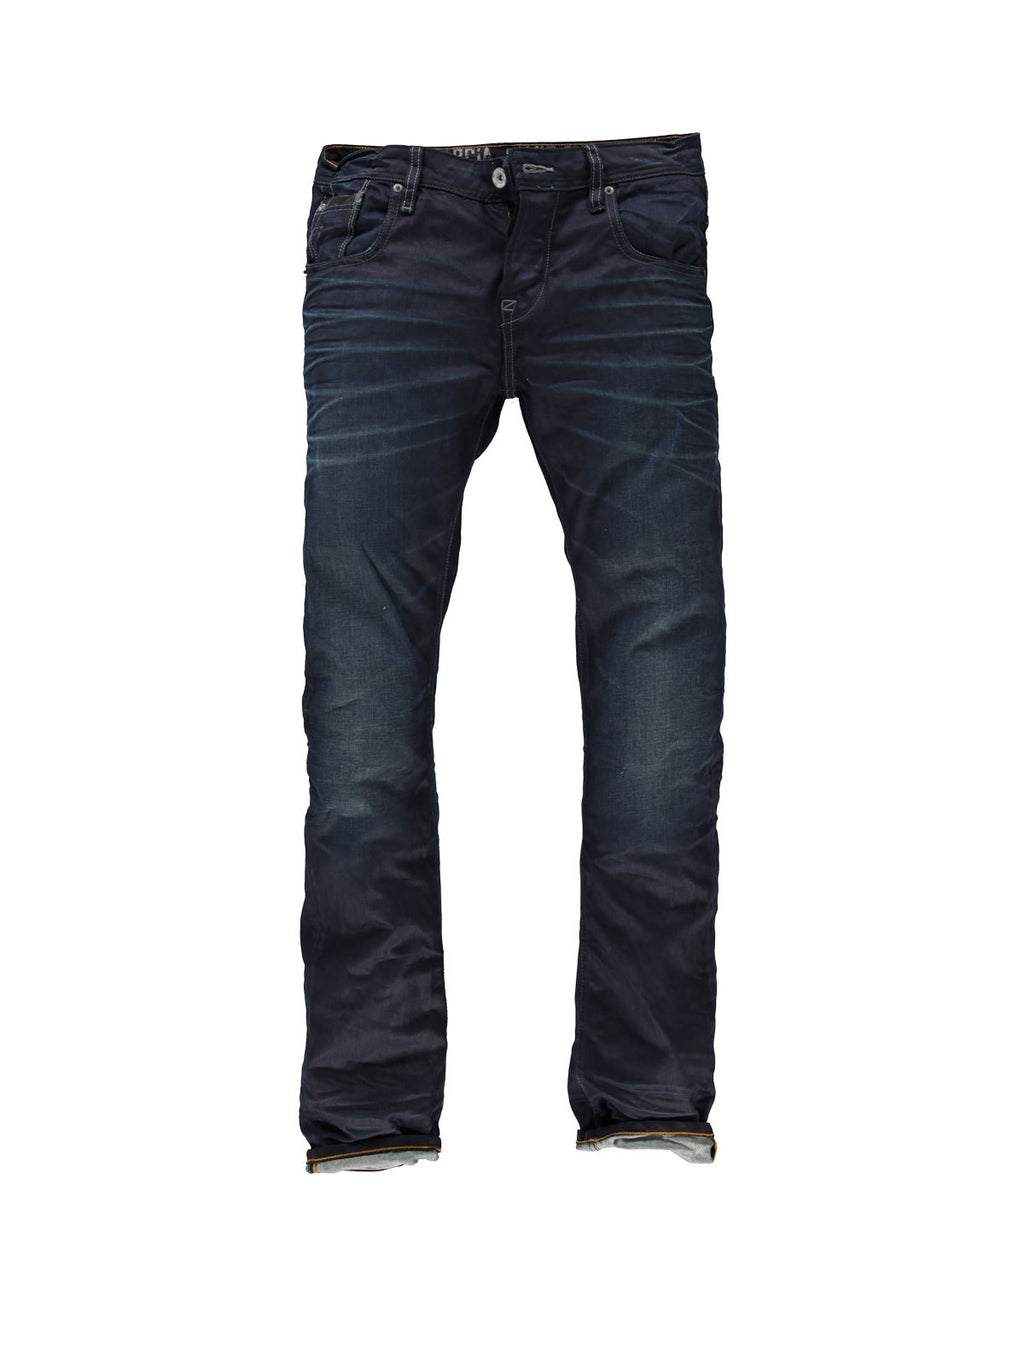 Garcia Men's Savio Blue Jean - LAST PAIR REDUCED!!